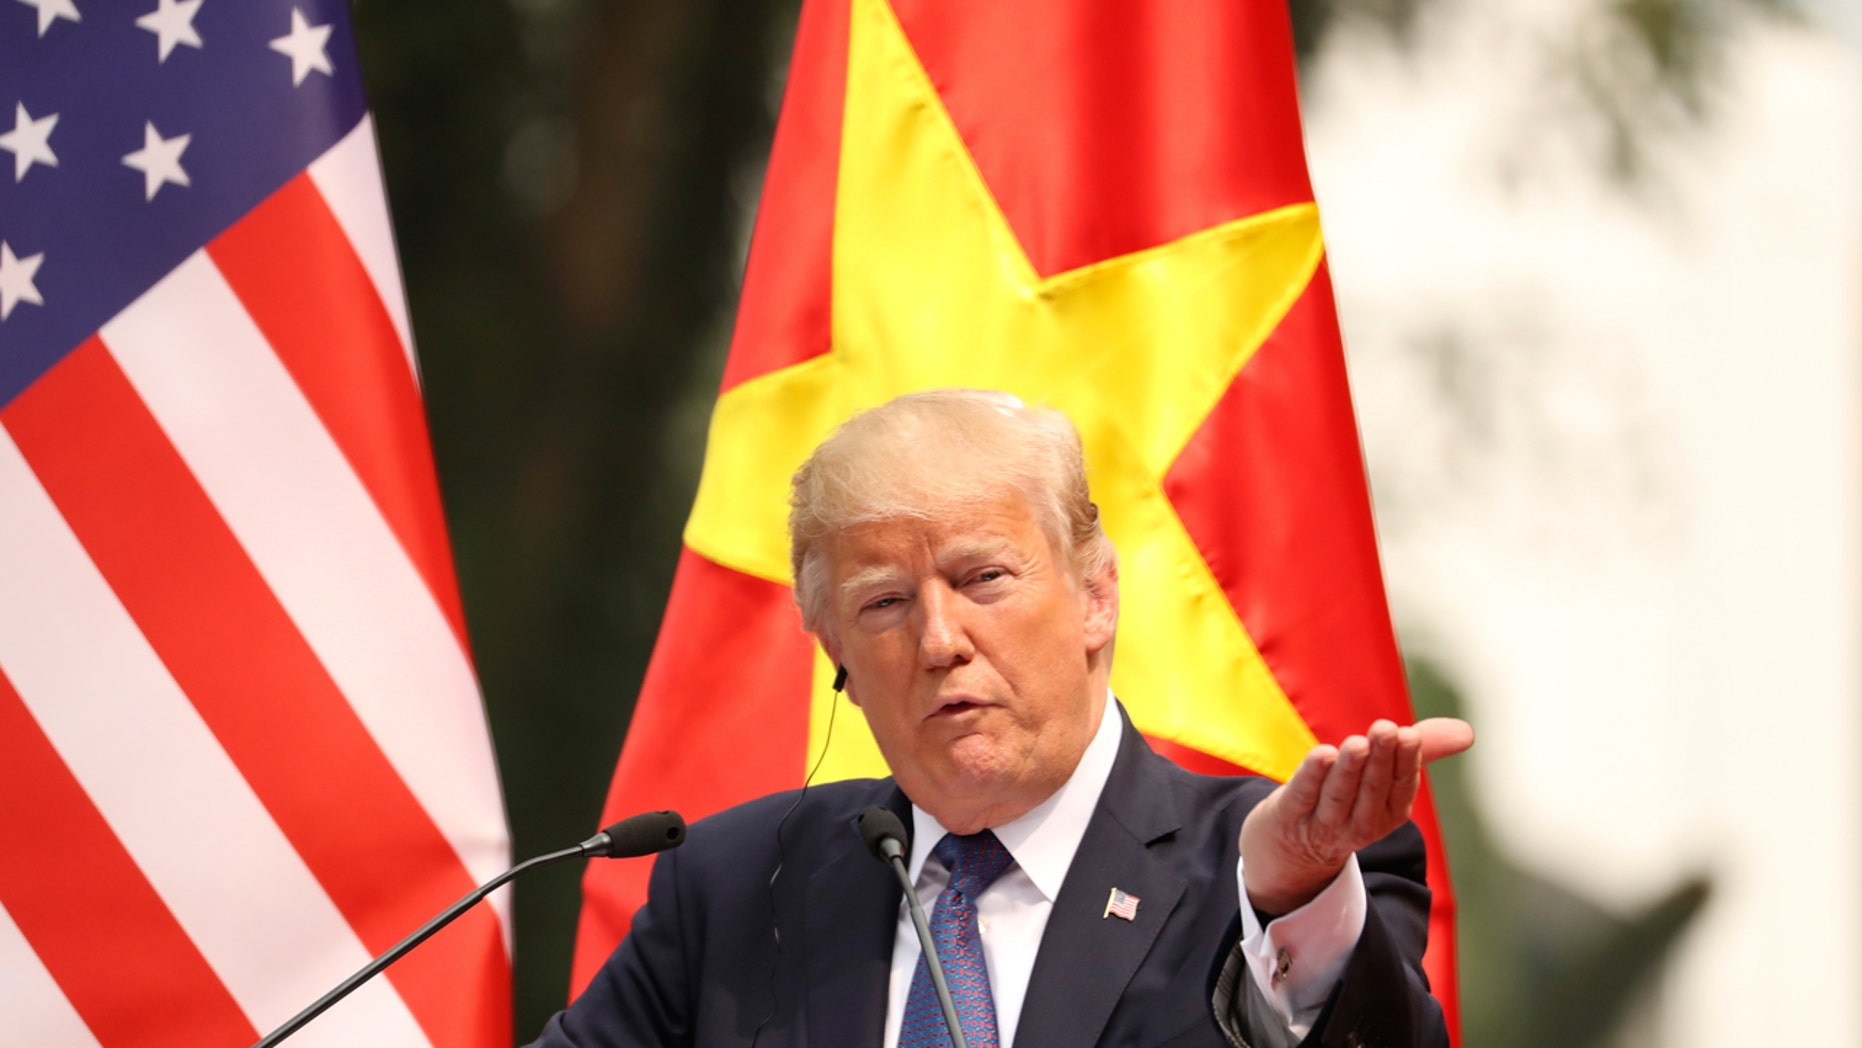 President Donald Trump speaks during a news conference at the Presidential Palace in Hanoi, Vietnam, Nov. 12, 2017.